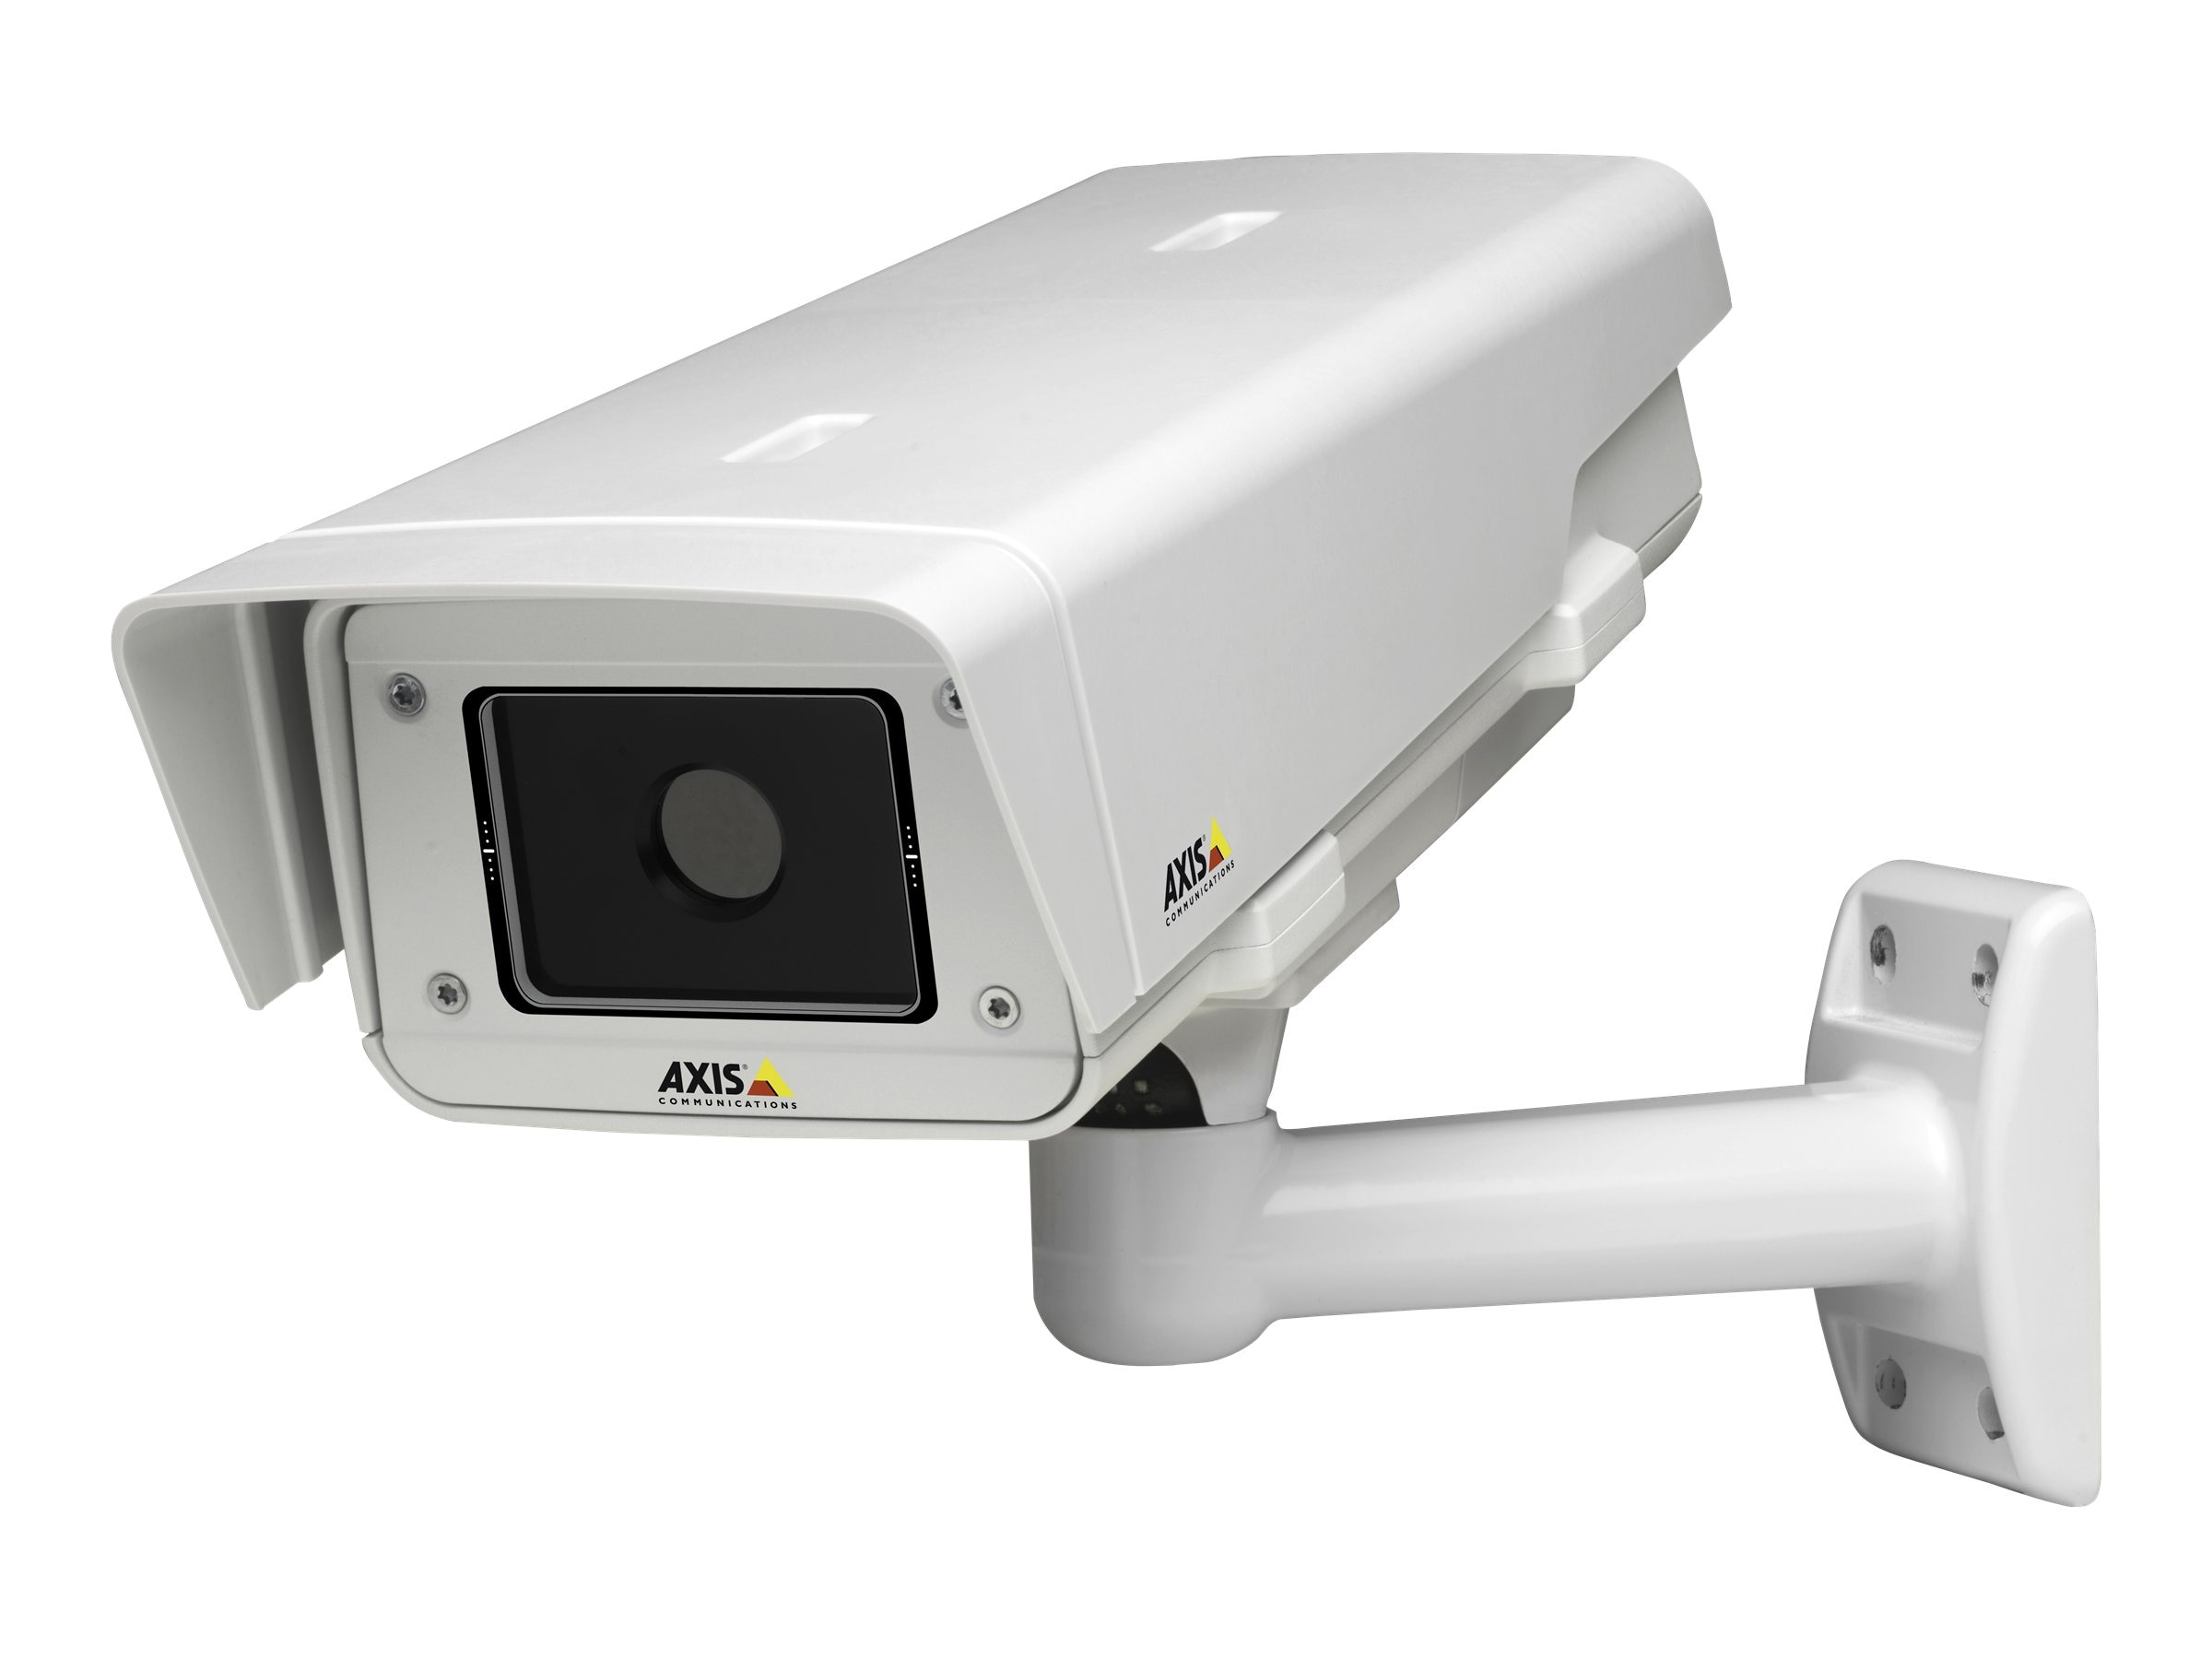 Axis Q1922 Thermal Network Camera, 19mm, 0502-001, 13846275, Cameras - Security